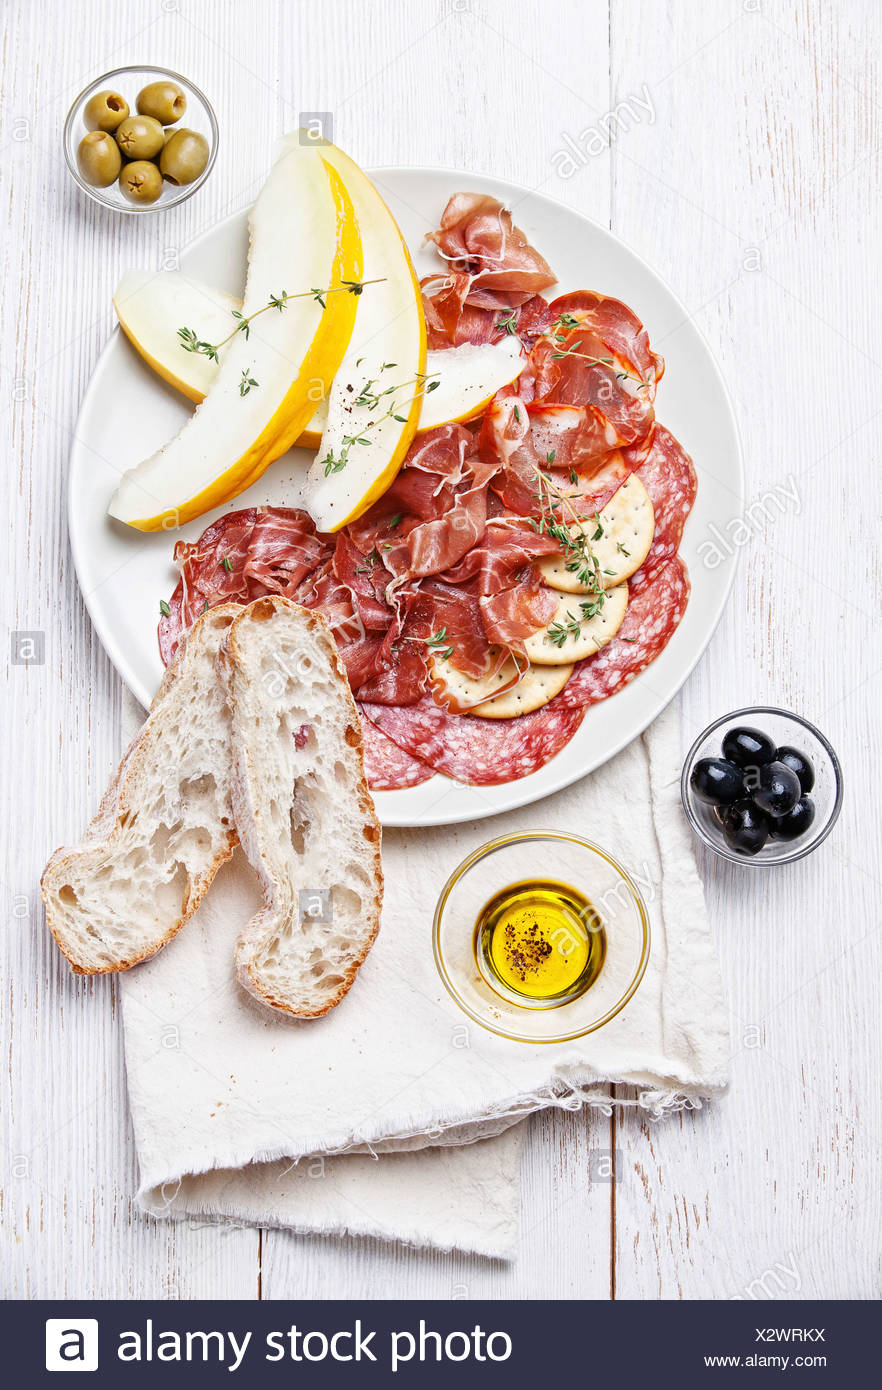 Platter of Assorted Cured Meats and Melon - Stock Image